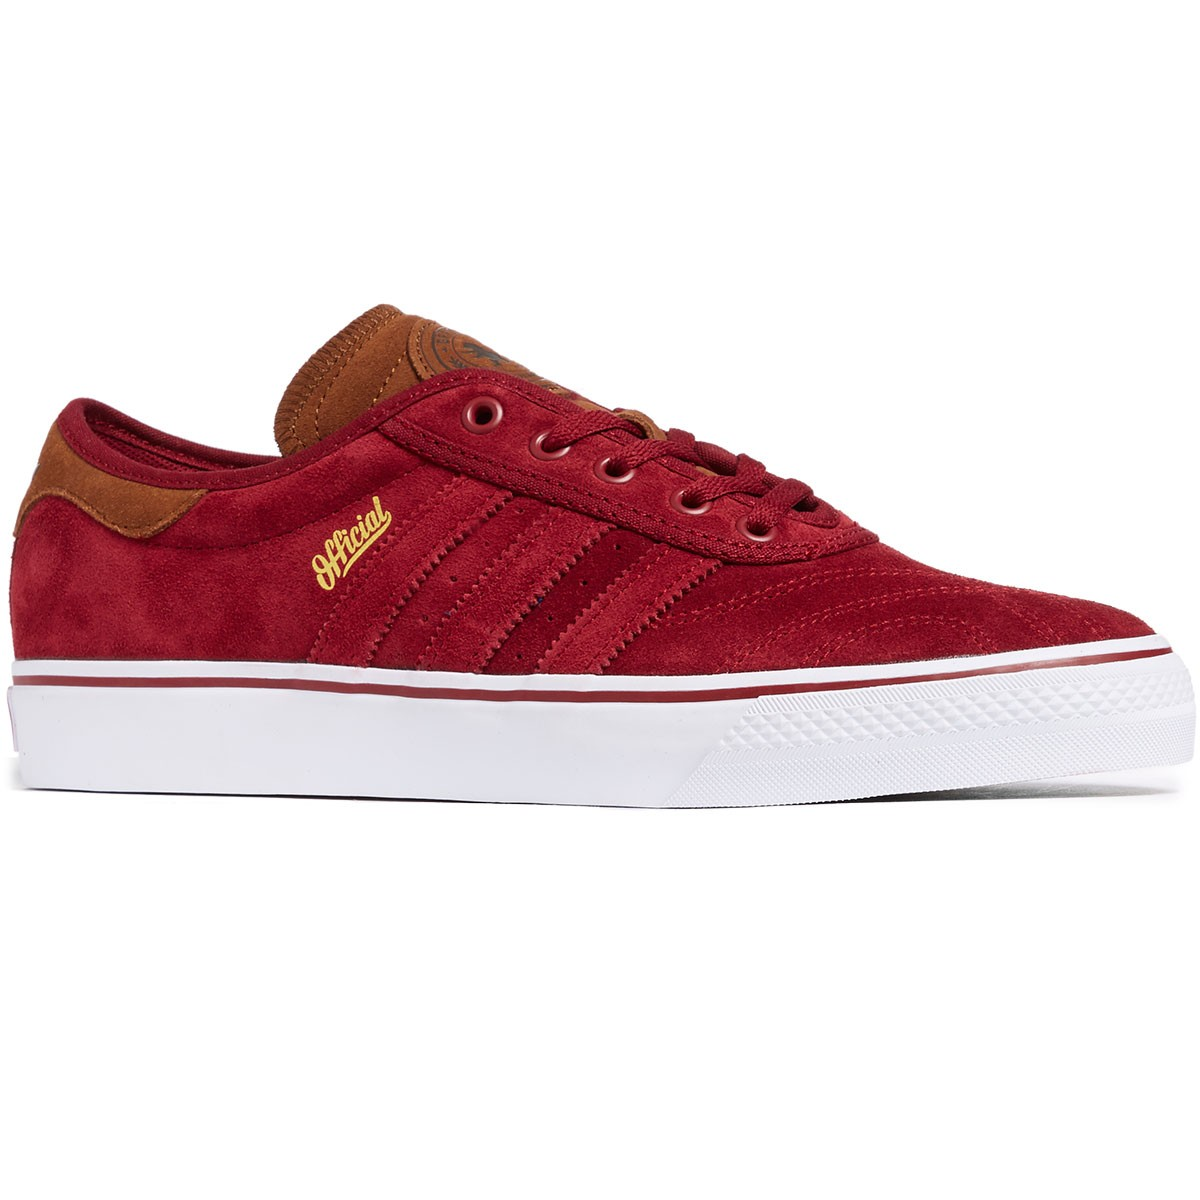 promo code 38afd 5f227 Adidas X Official Adi-Ease Premiere ADV Shoes - BurgundyBarkWhite -